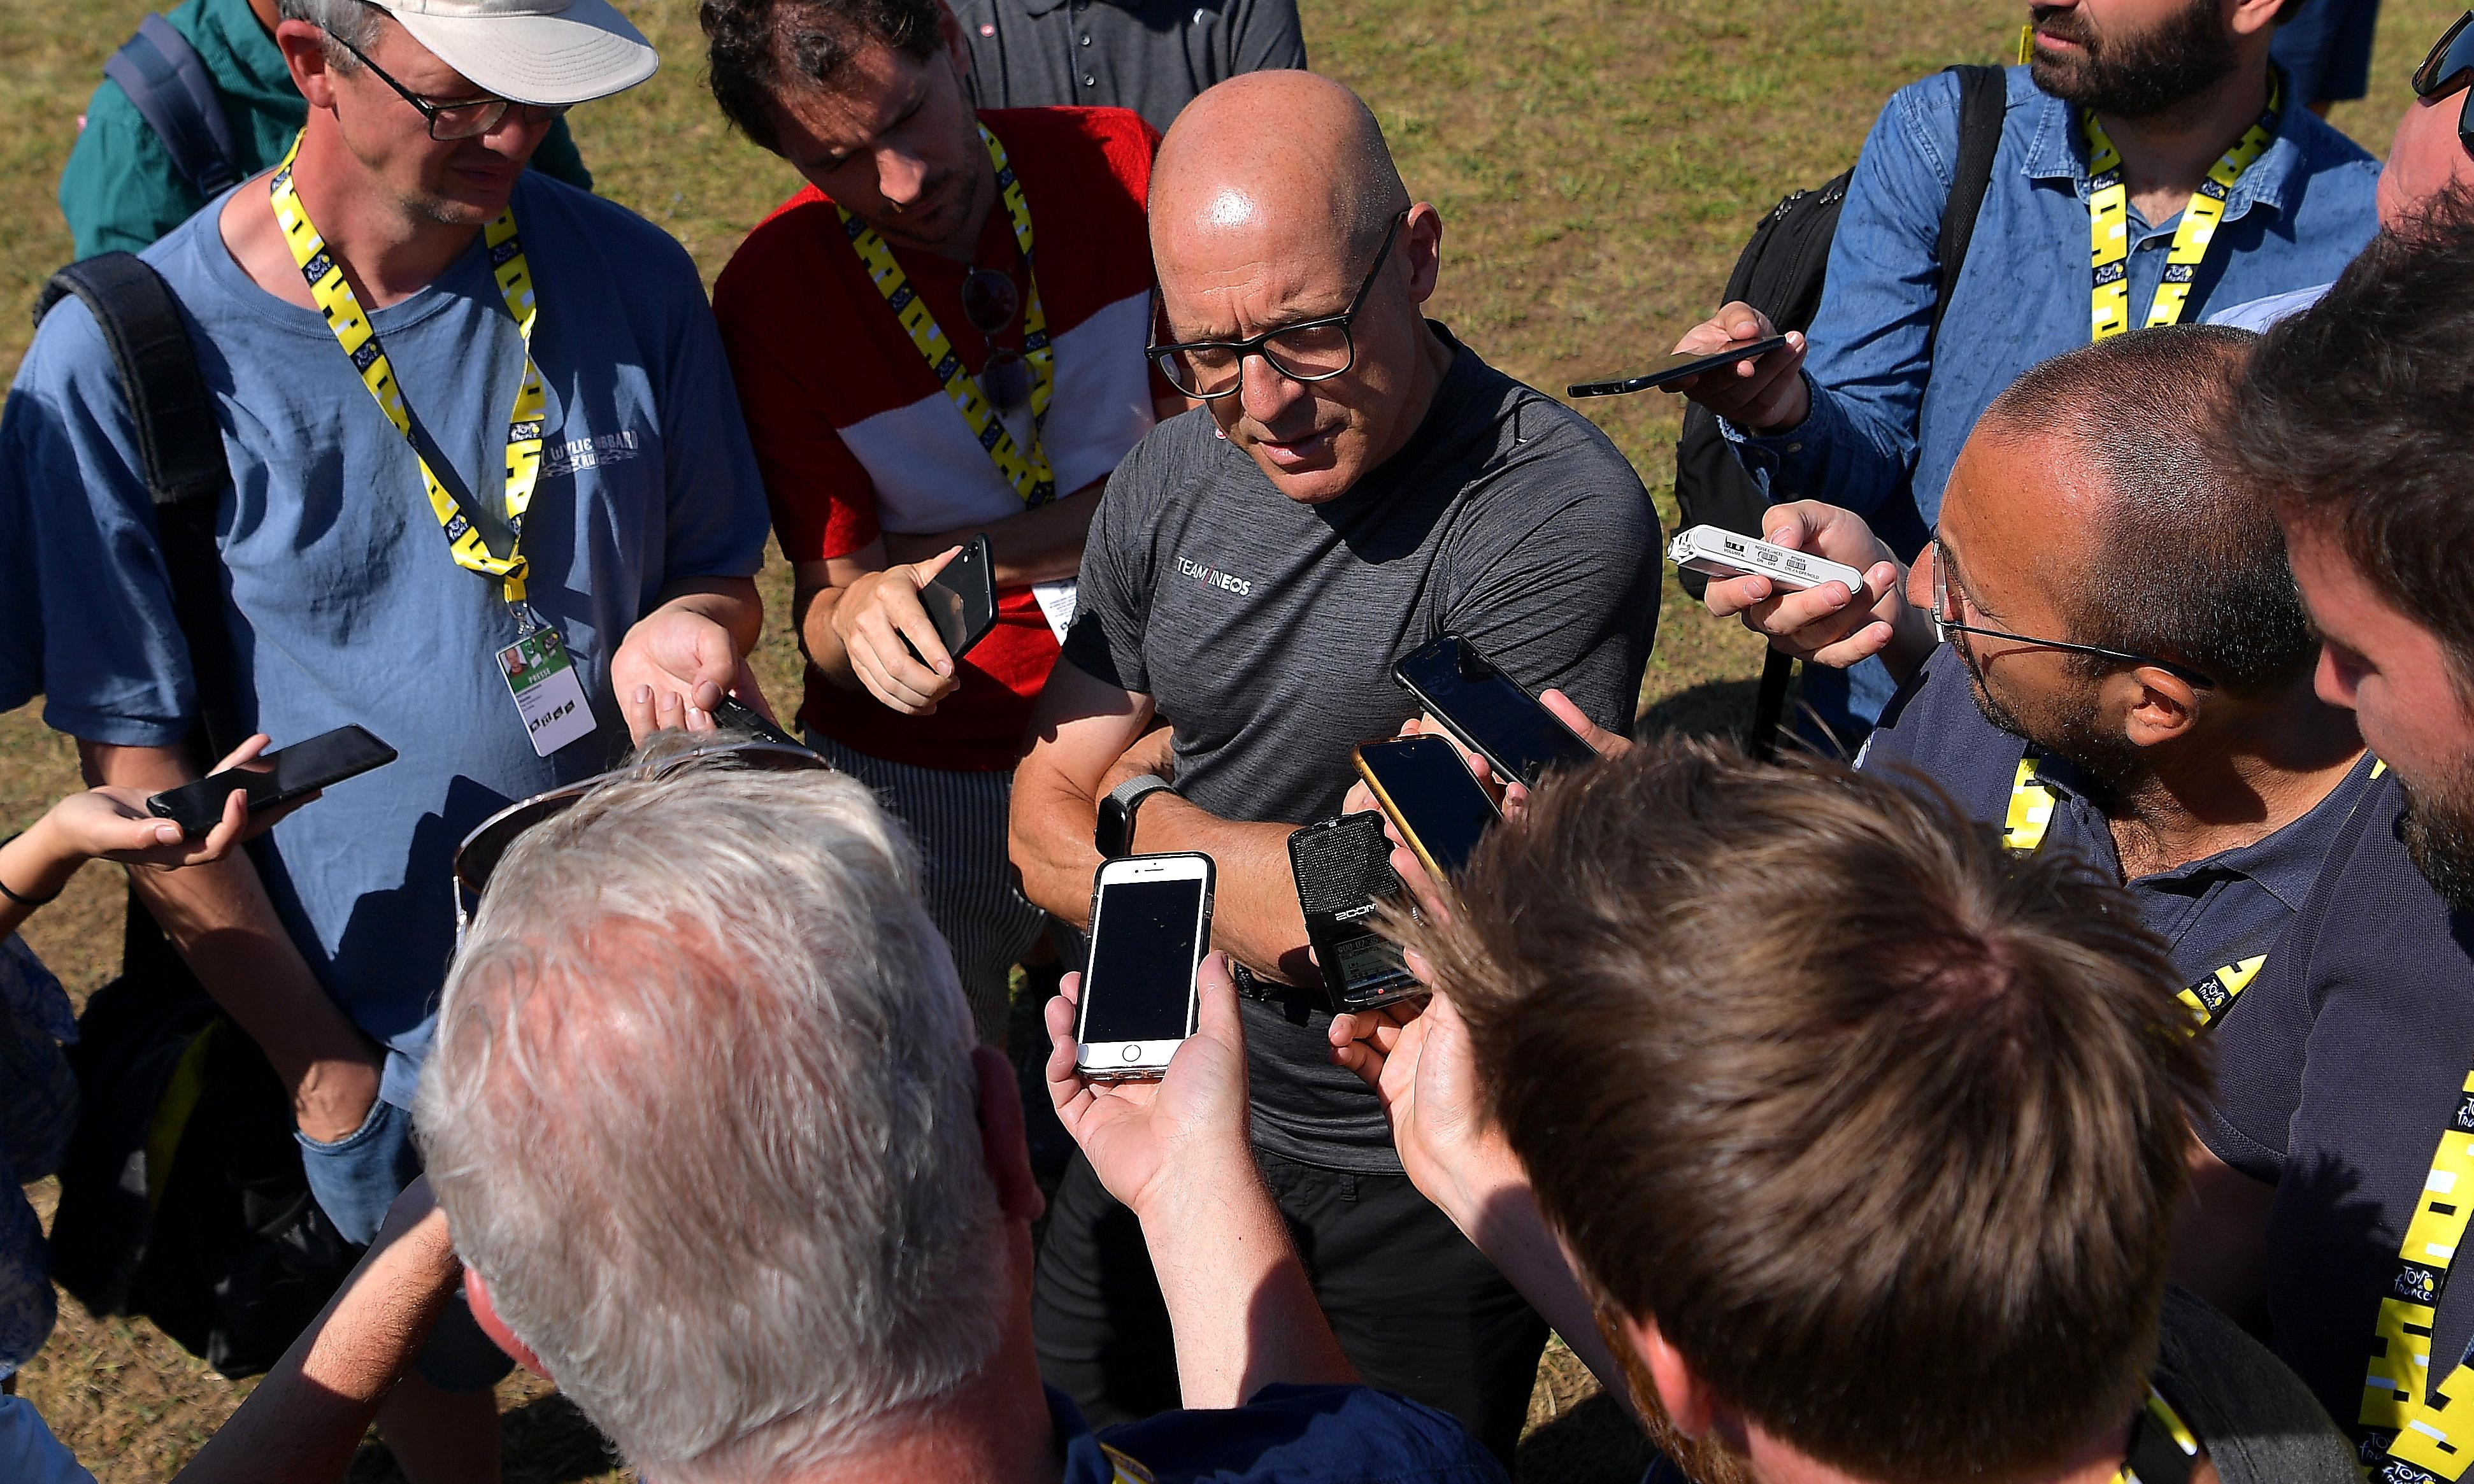 Dave Brailsford keen to 'twist knife' into Team Ineos's Tour rivals